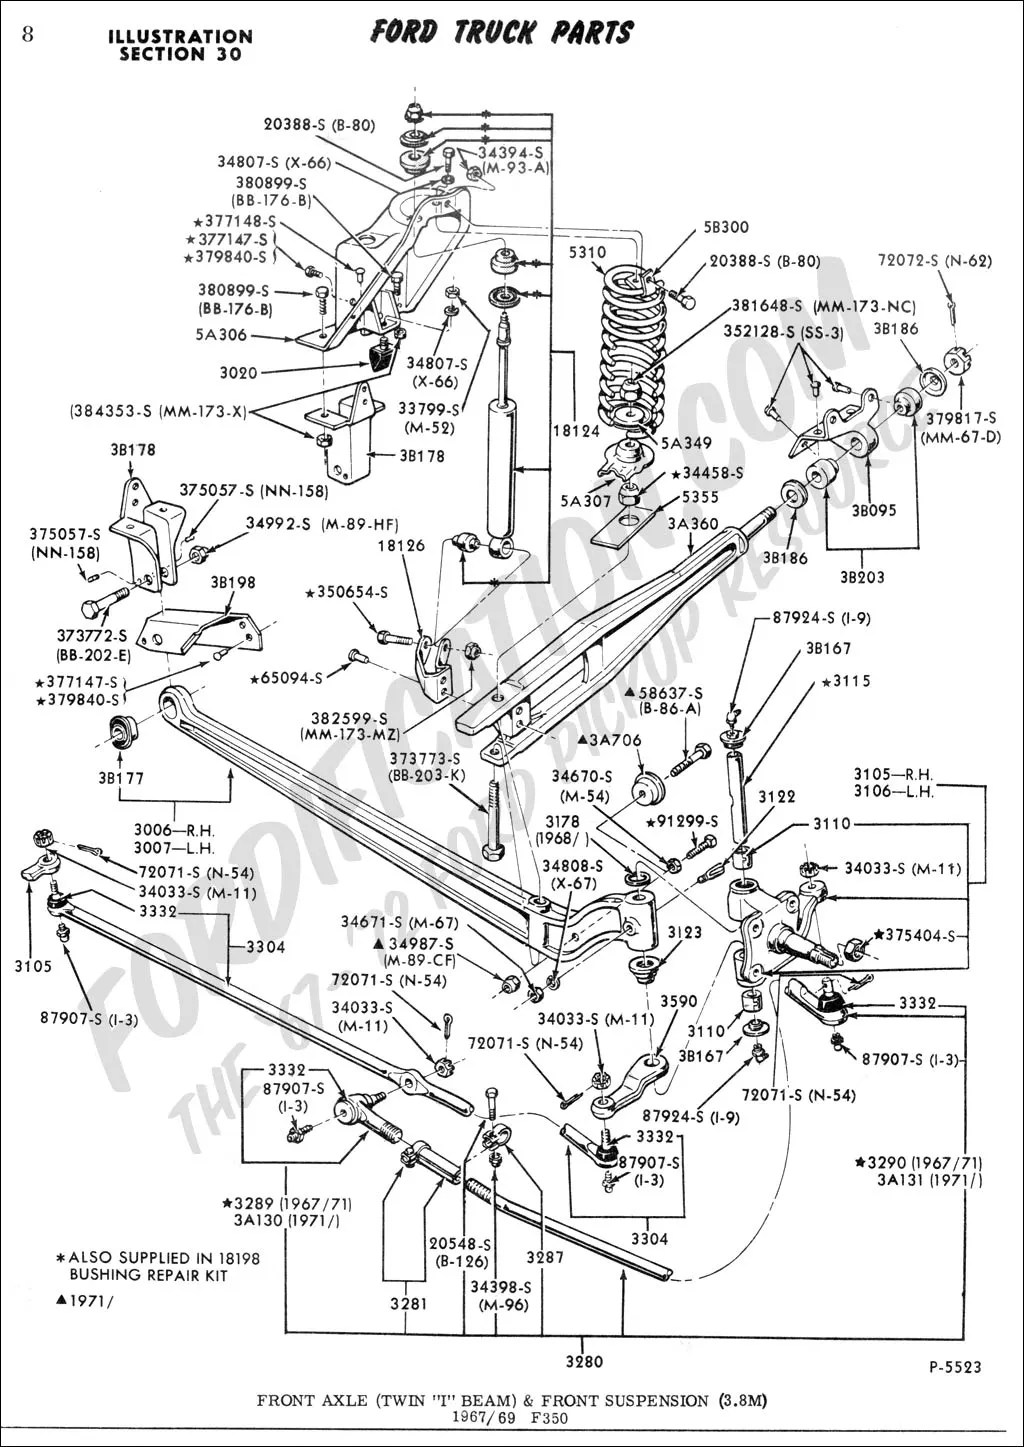 hight resolution of wiring diagram as well as ford f 350 super duty steering parts 1999 f350 steering diagram